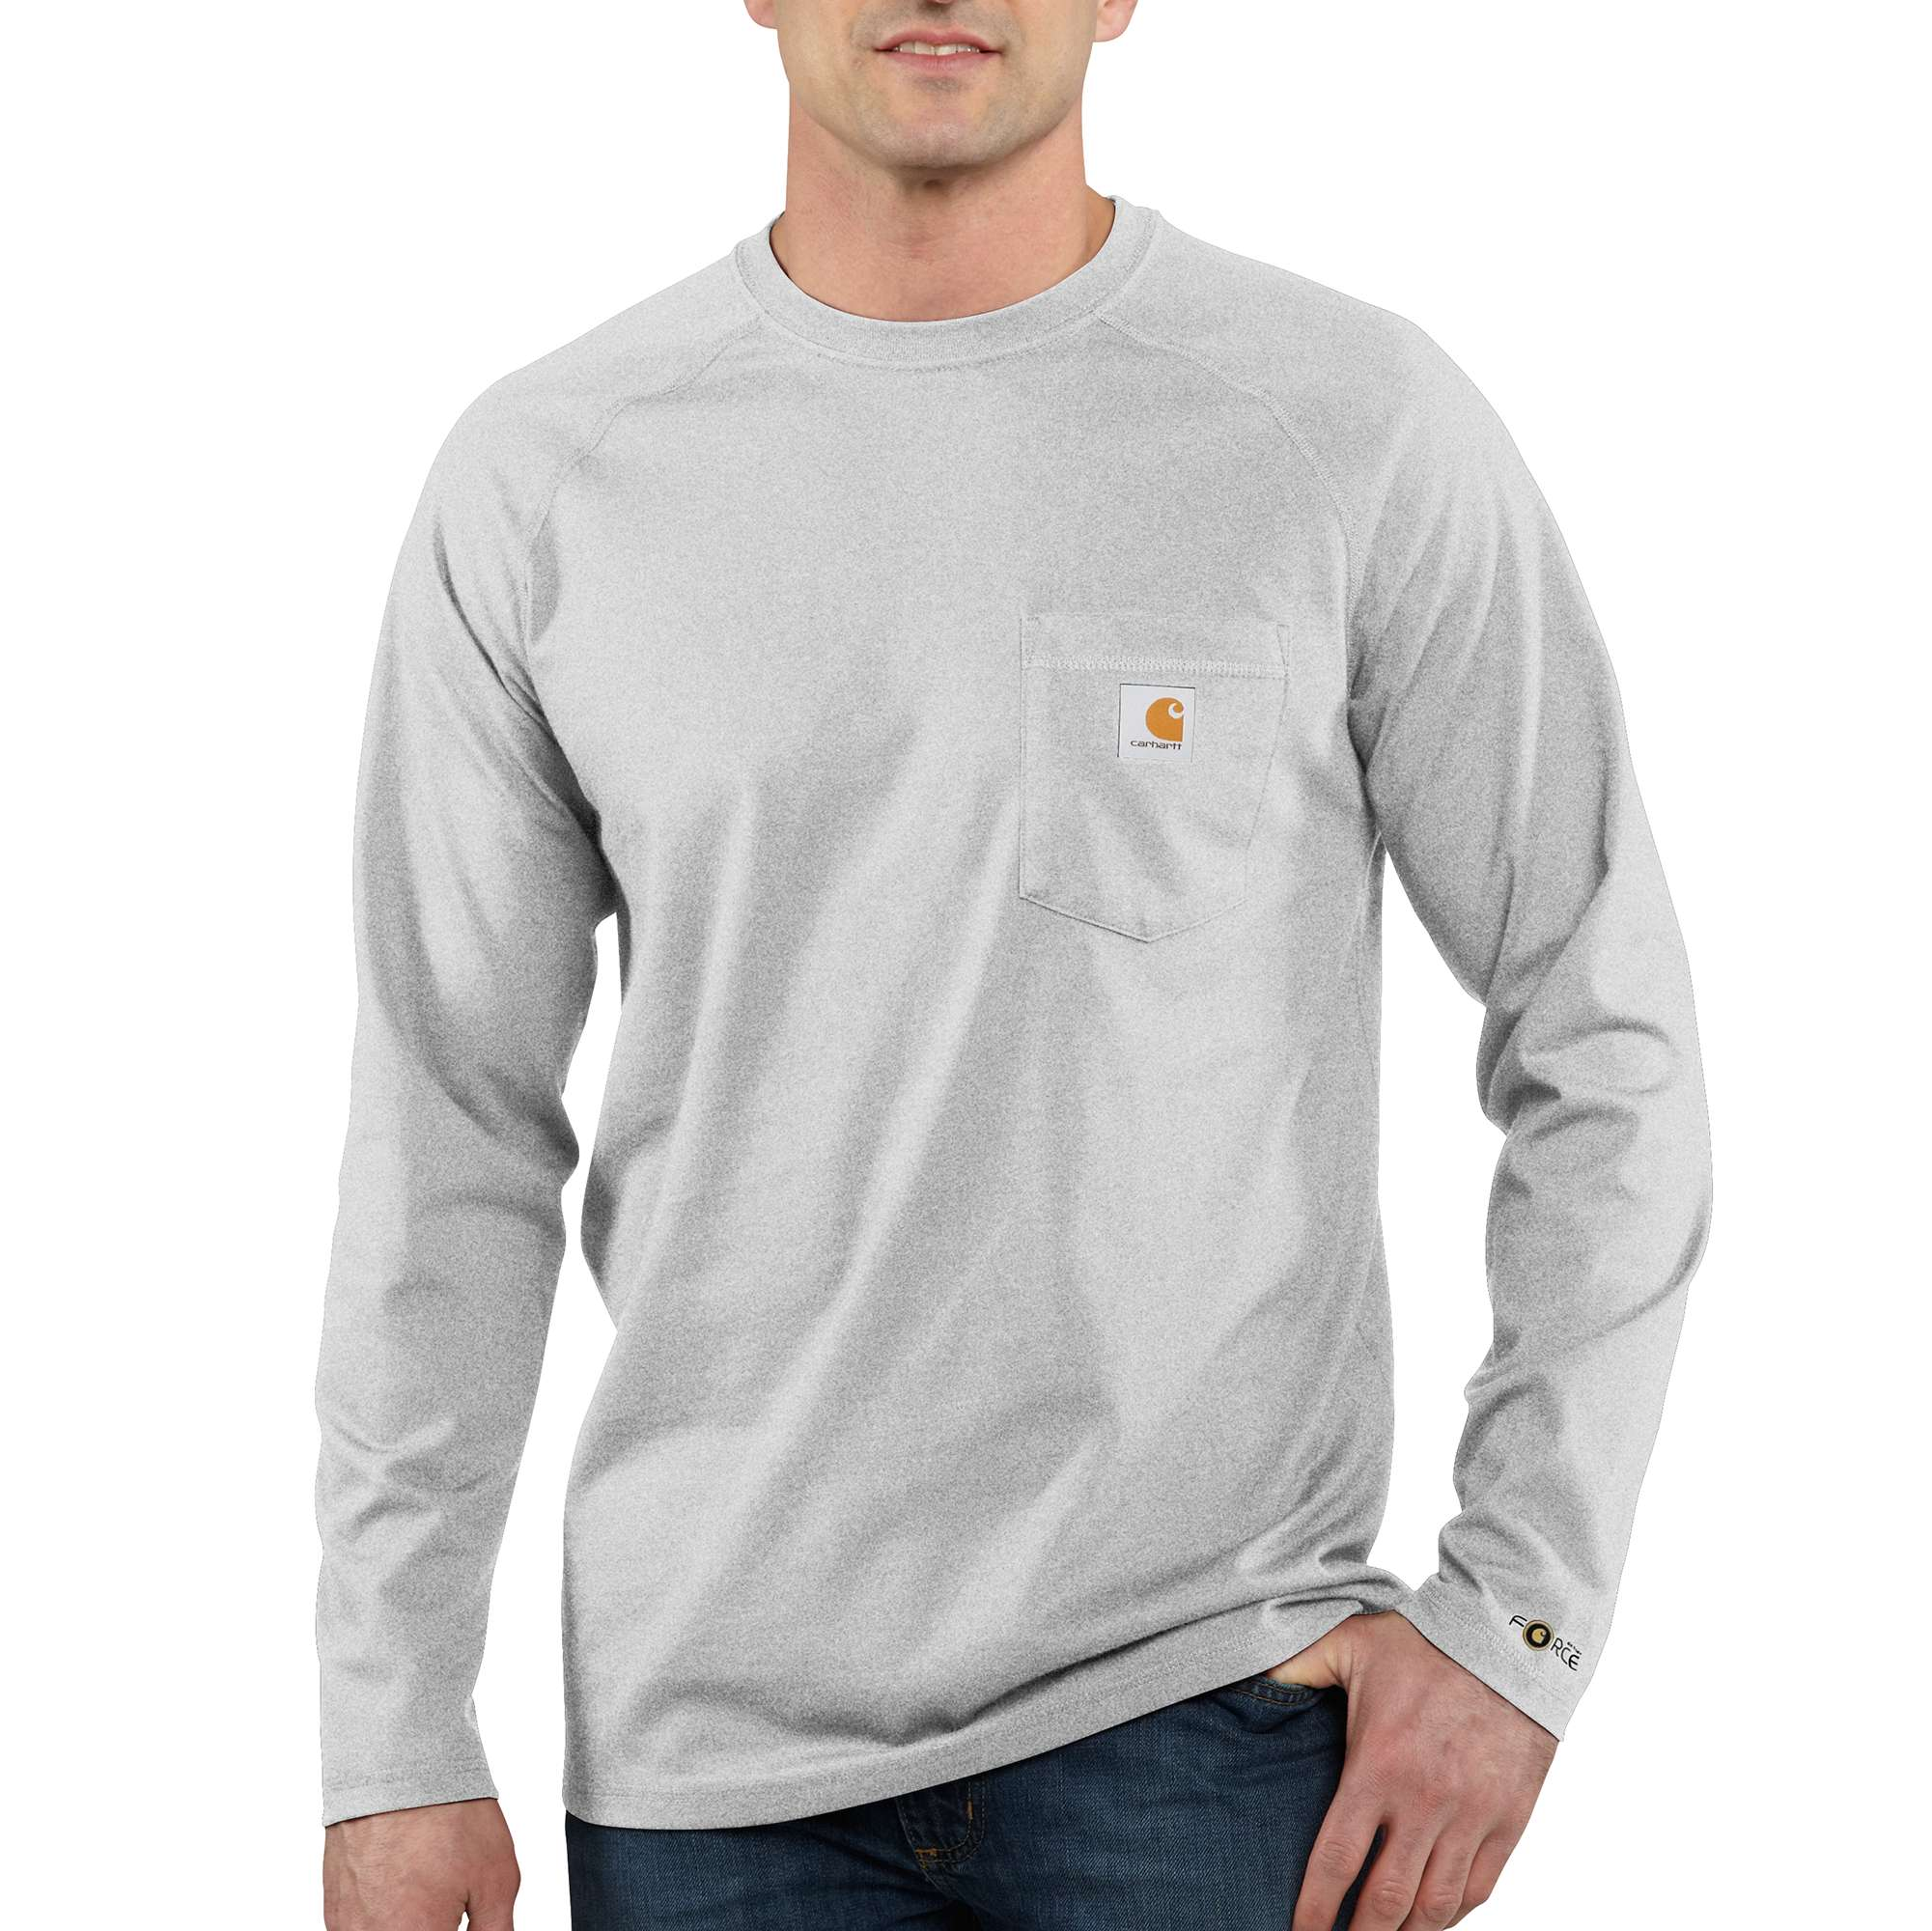 Men's Long Sleeve Force Cotton Tee, Heather Gray, swatch